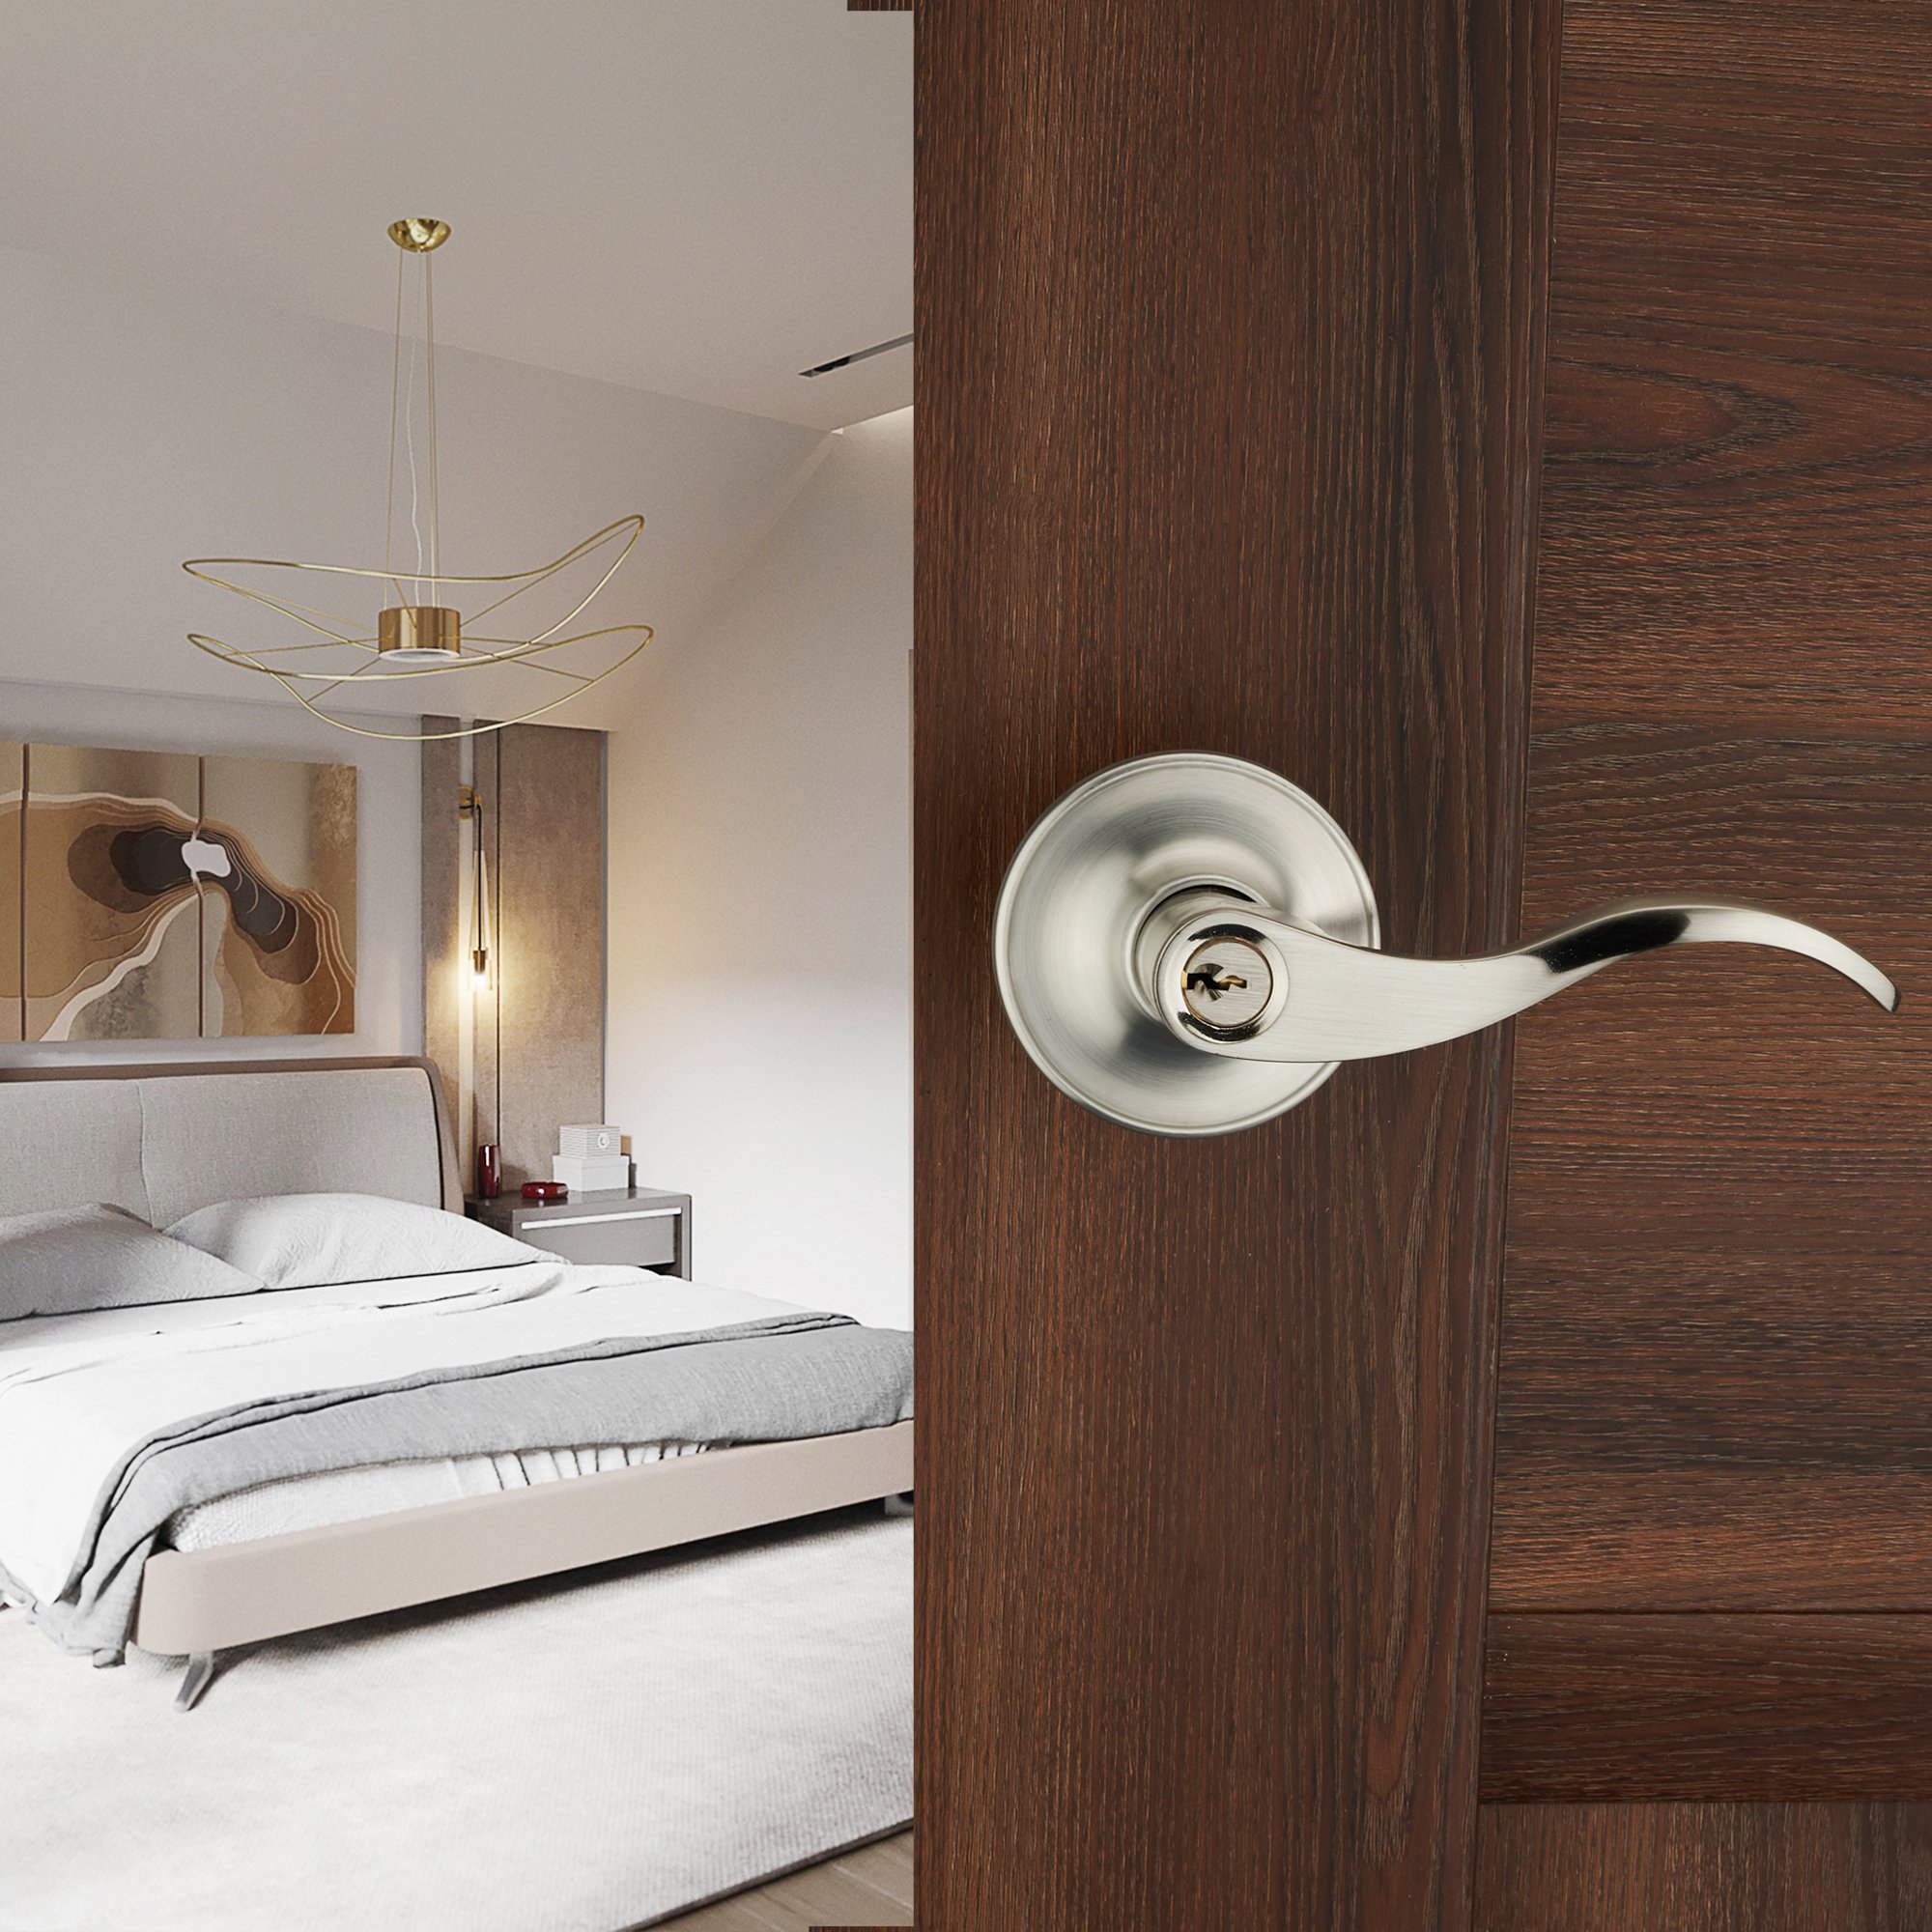 HENYIN Wave Lever Keyed Entry Door Lock/Door Knob Hardware Wave Handle and Closet Lockset (805SN-R) by HENYIN (Image #5)